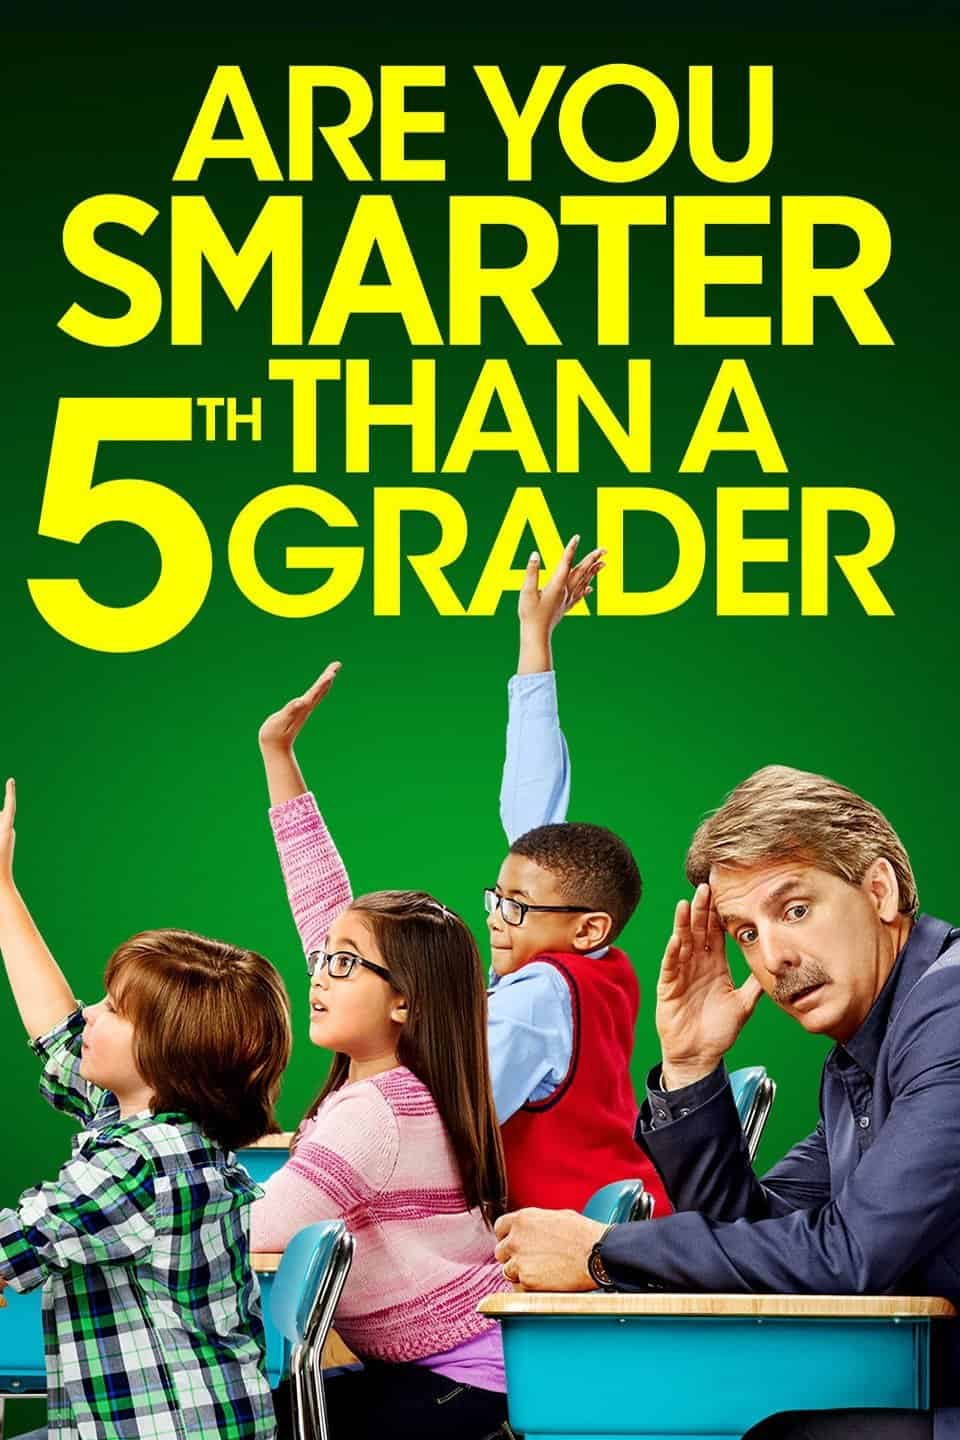 Are You Smarter than a 5th Grader?, 2007